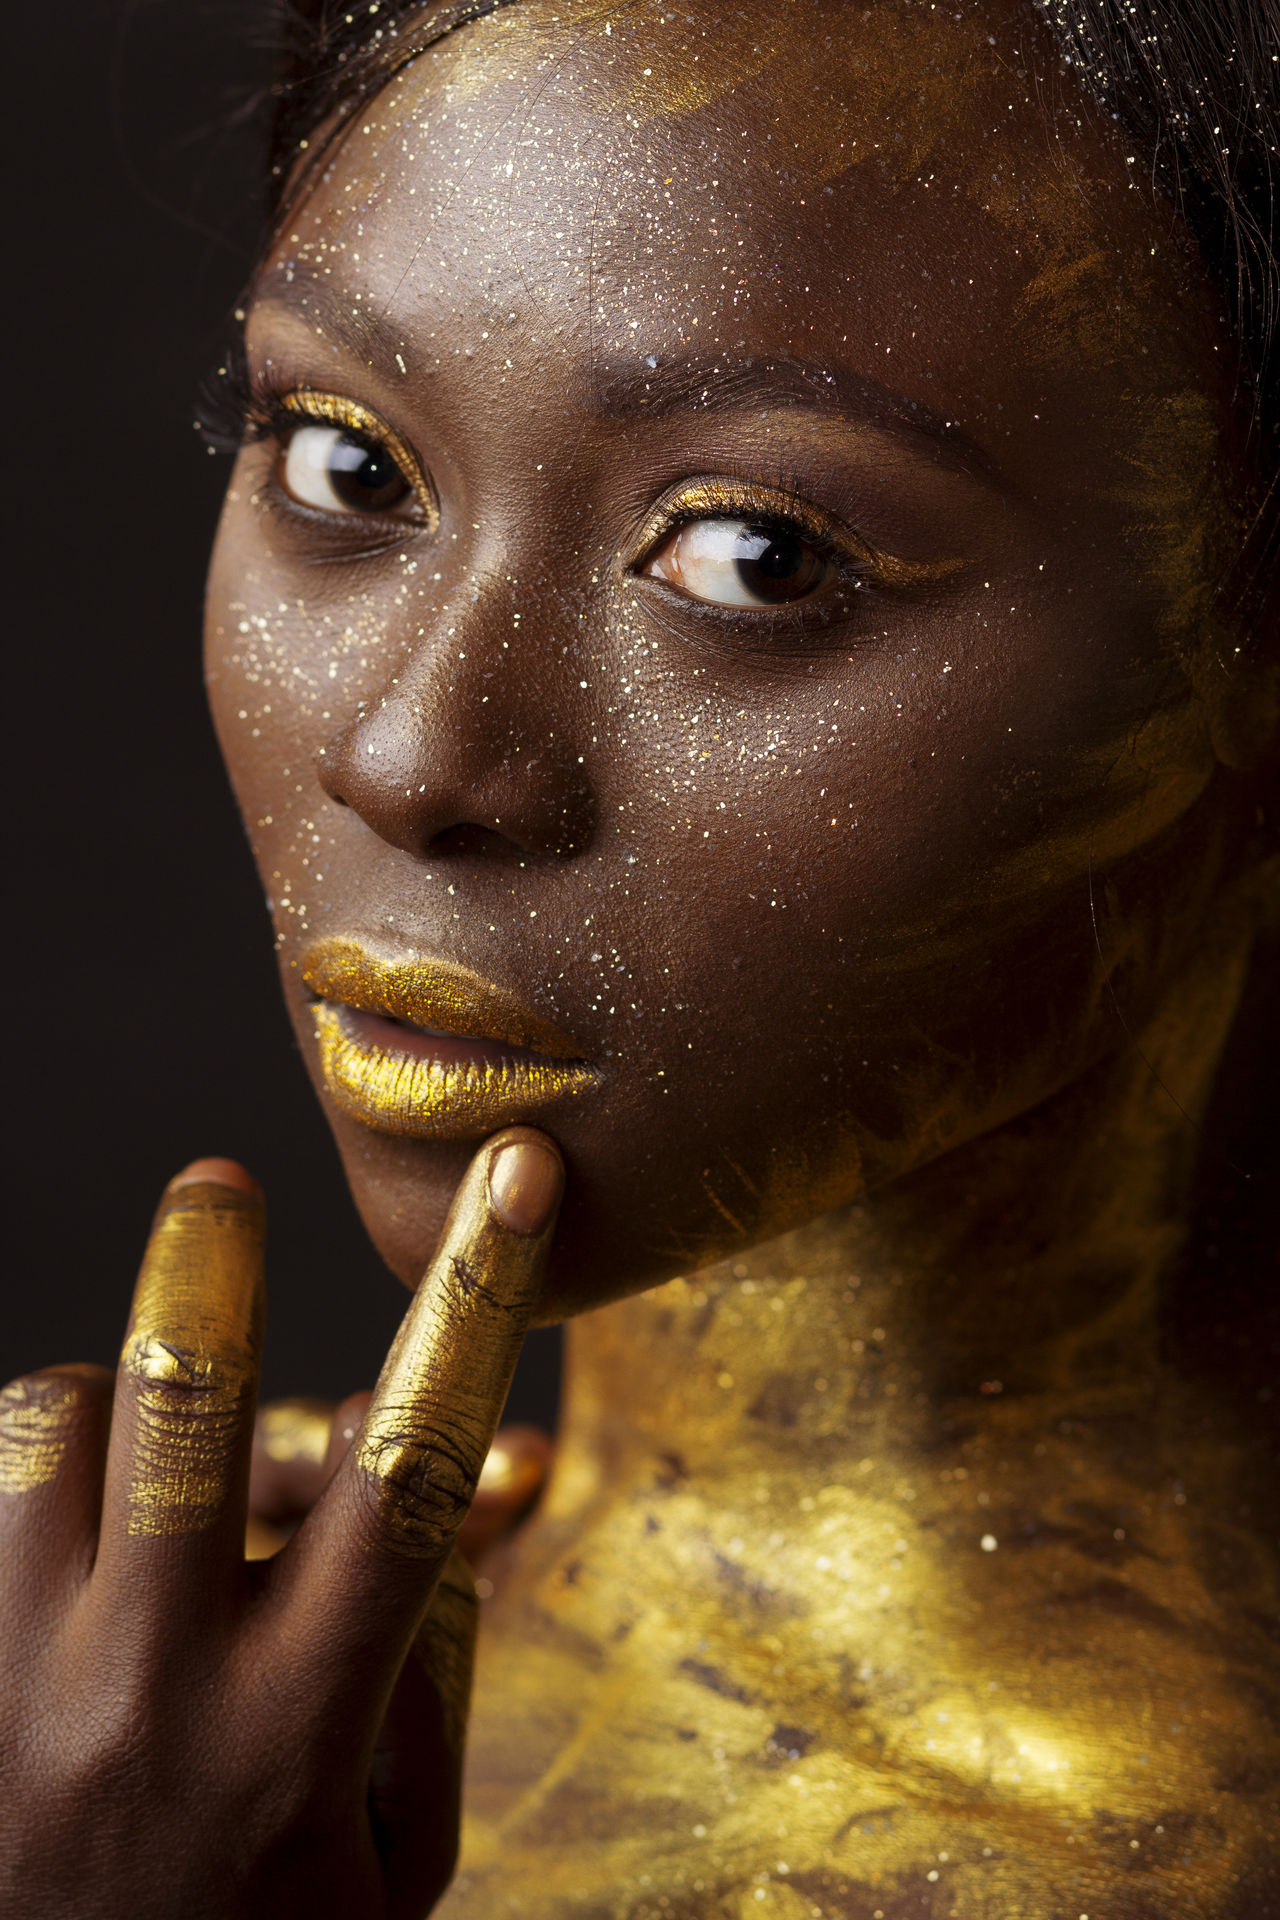 Beauty Close-up Cultures Editorial  Gold Gold Colored Headshot Human Body Part Human Face Looking Portrait Shine Shiny Stage Make-up Studio Shot Yellow